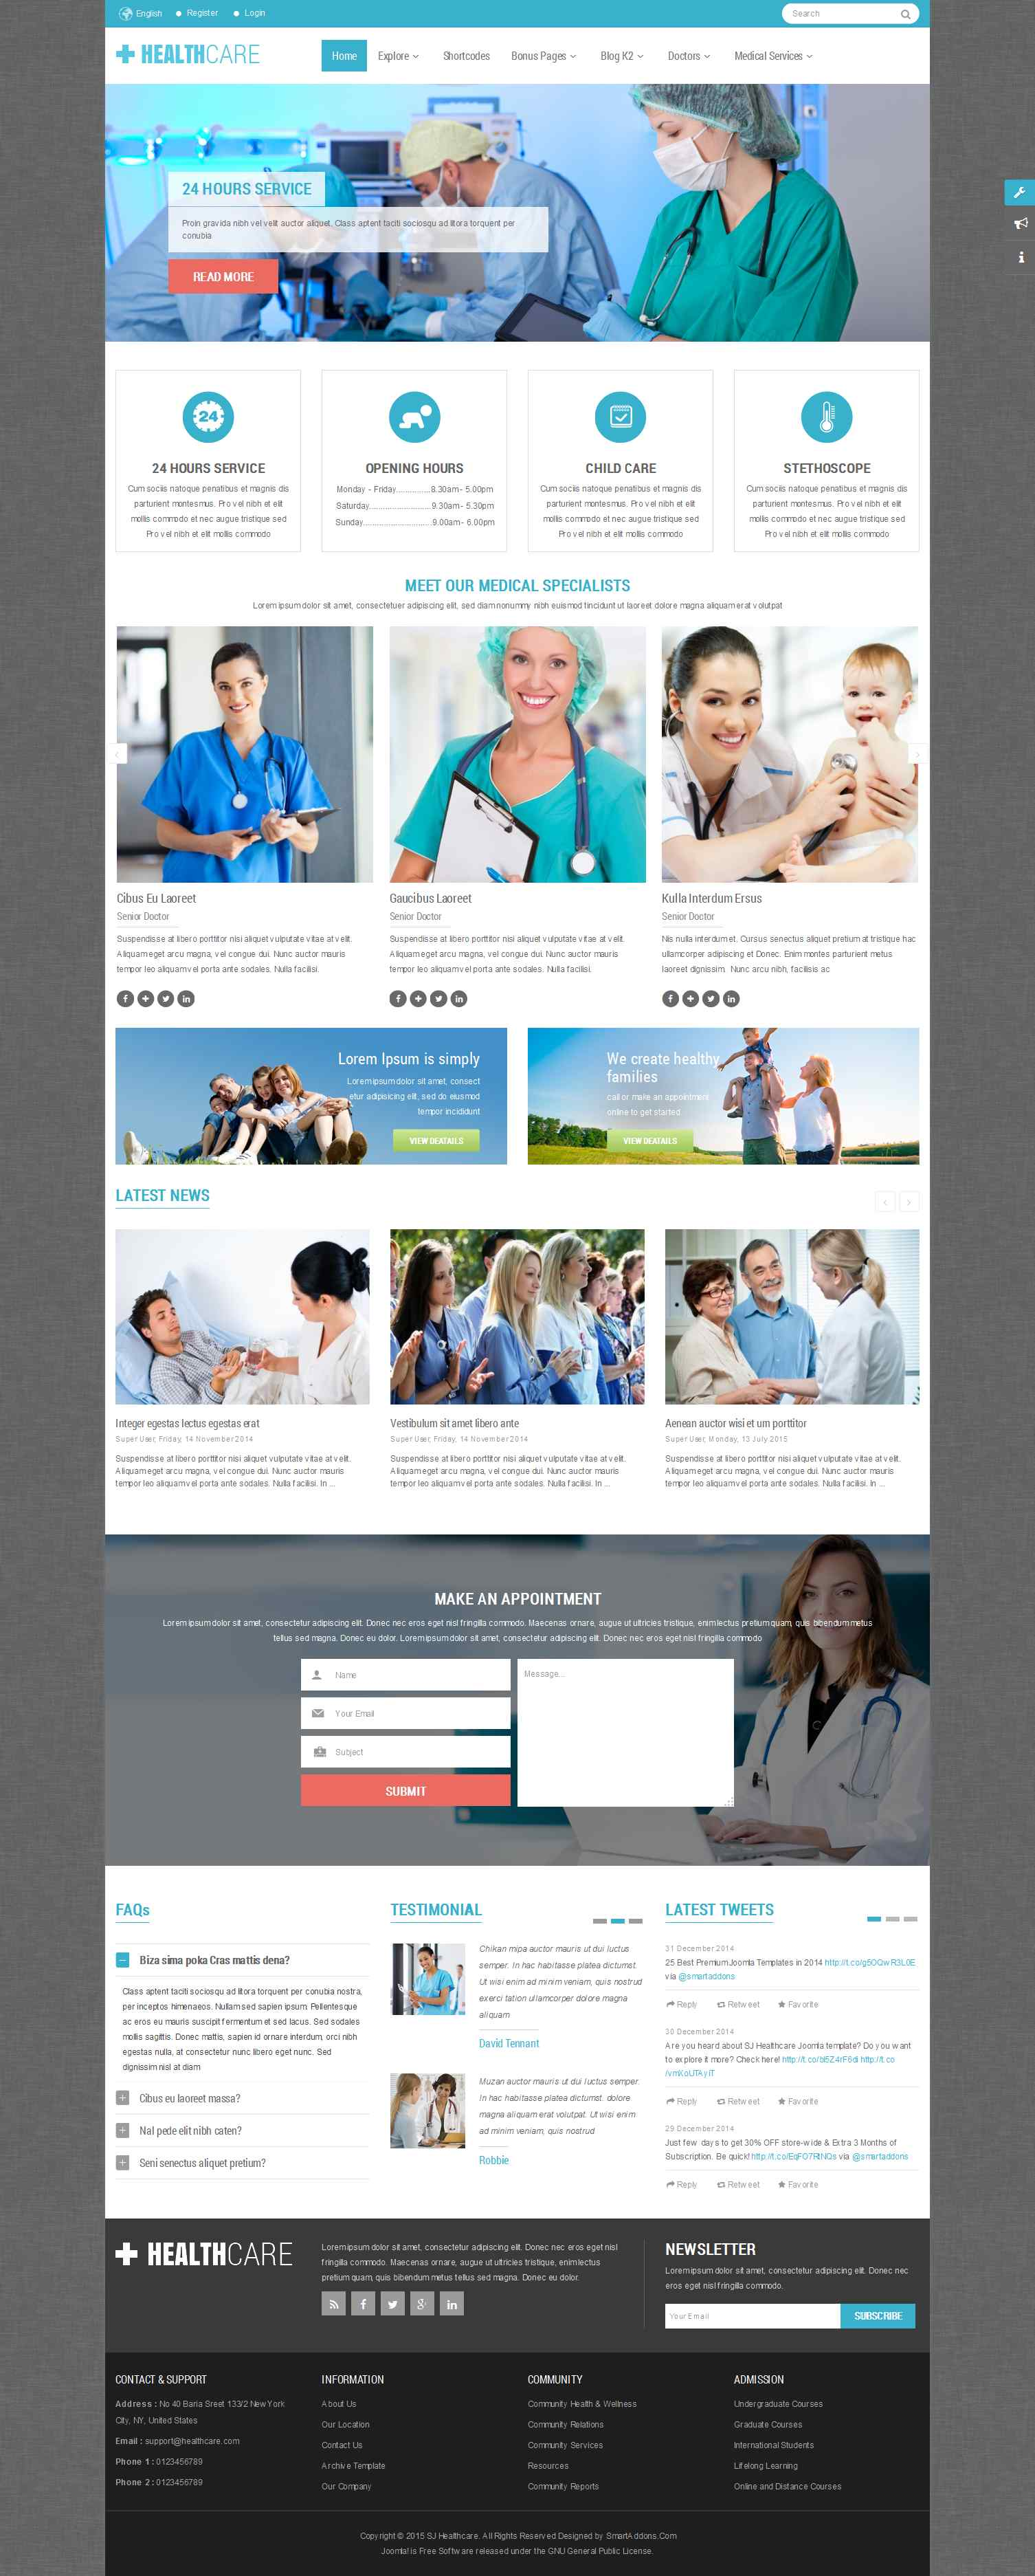 SJ Healthcare - Responsive Joomla Medical Health Template - 07_boxed-layout-compressed.jpg